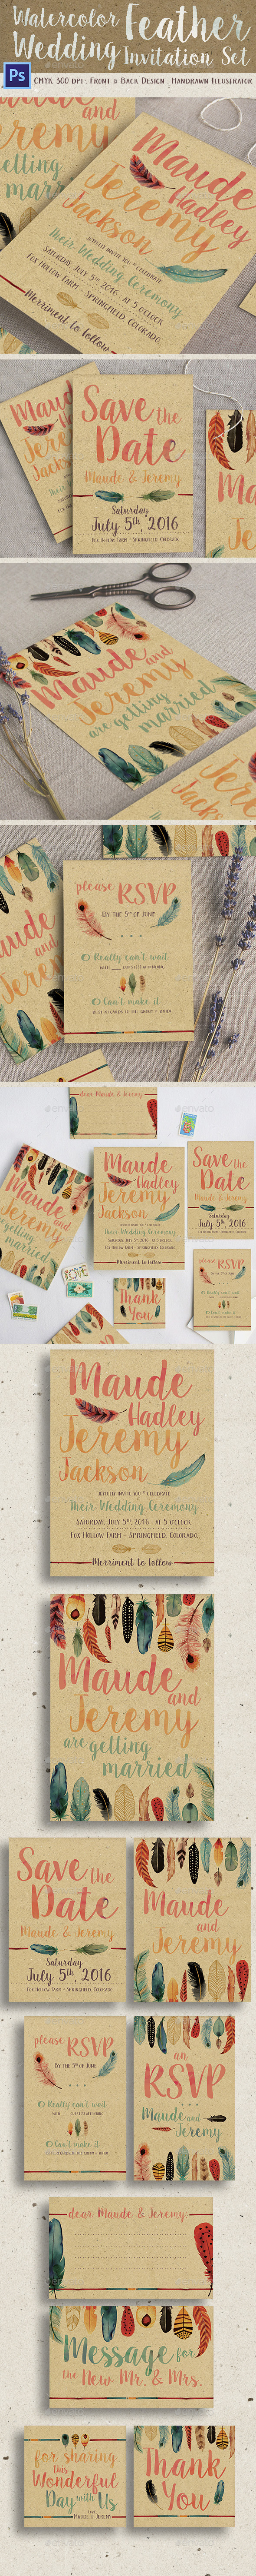 Watercolor Feather Wedding Invitation Set - Weddings Cards & Invites